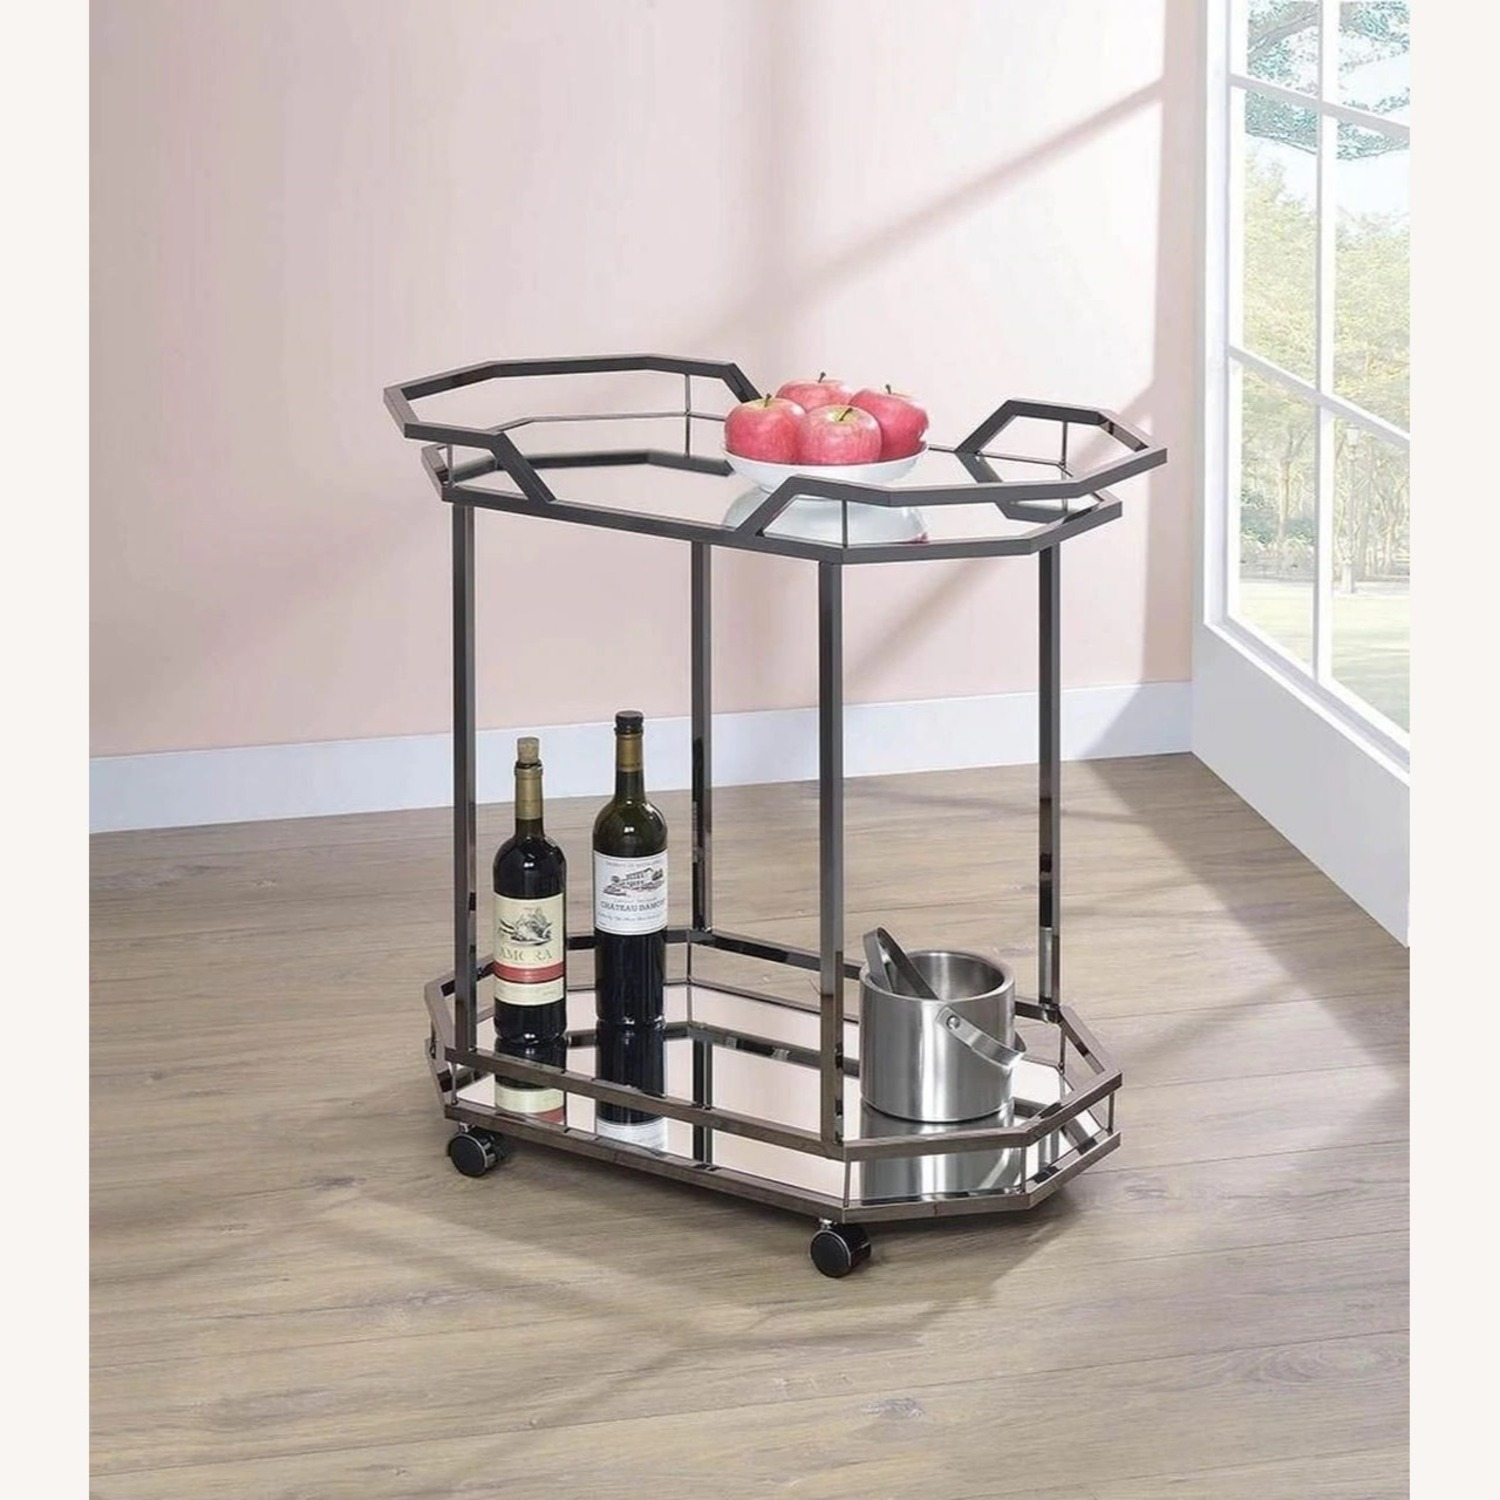 Serving Cart In Black Nickel W/ Mirrored Bottom - image-3